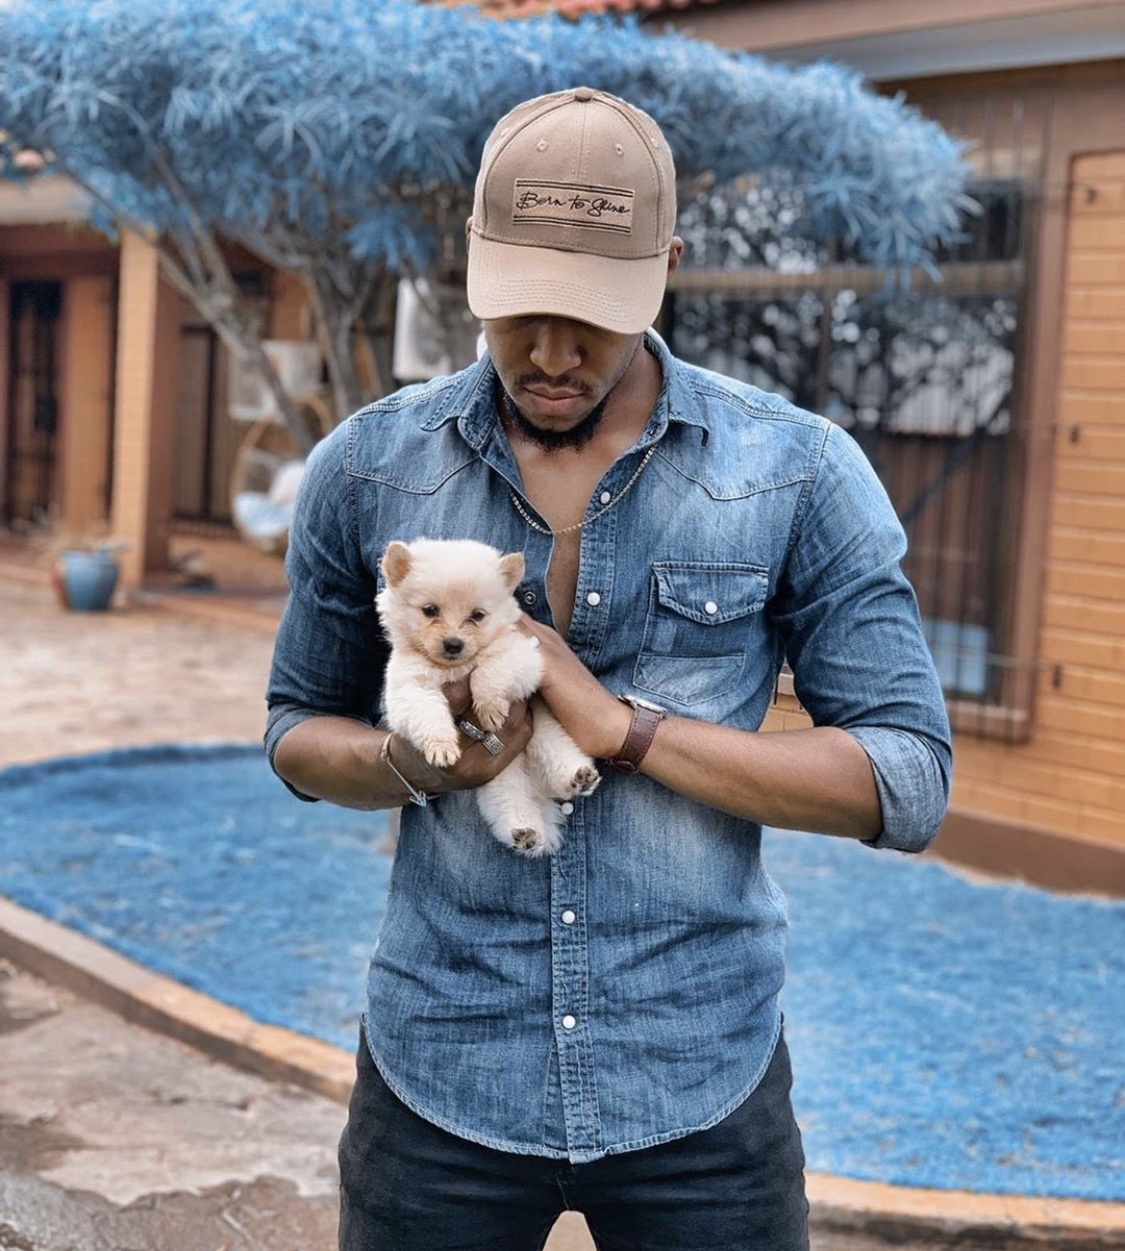 Diamond Platnumz young ex side chick moves on with Idris Sultan